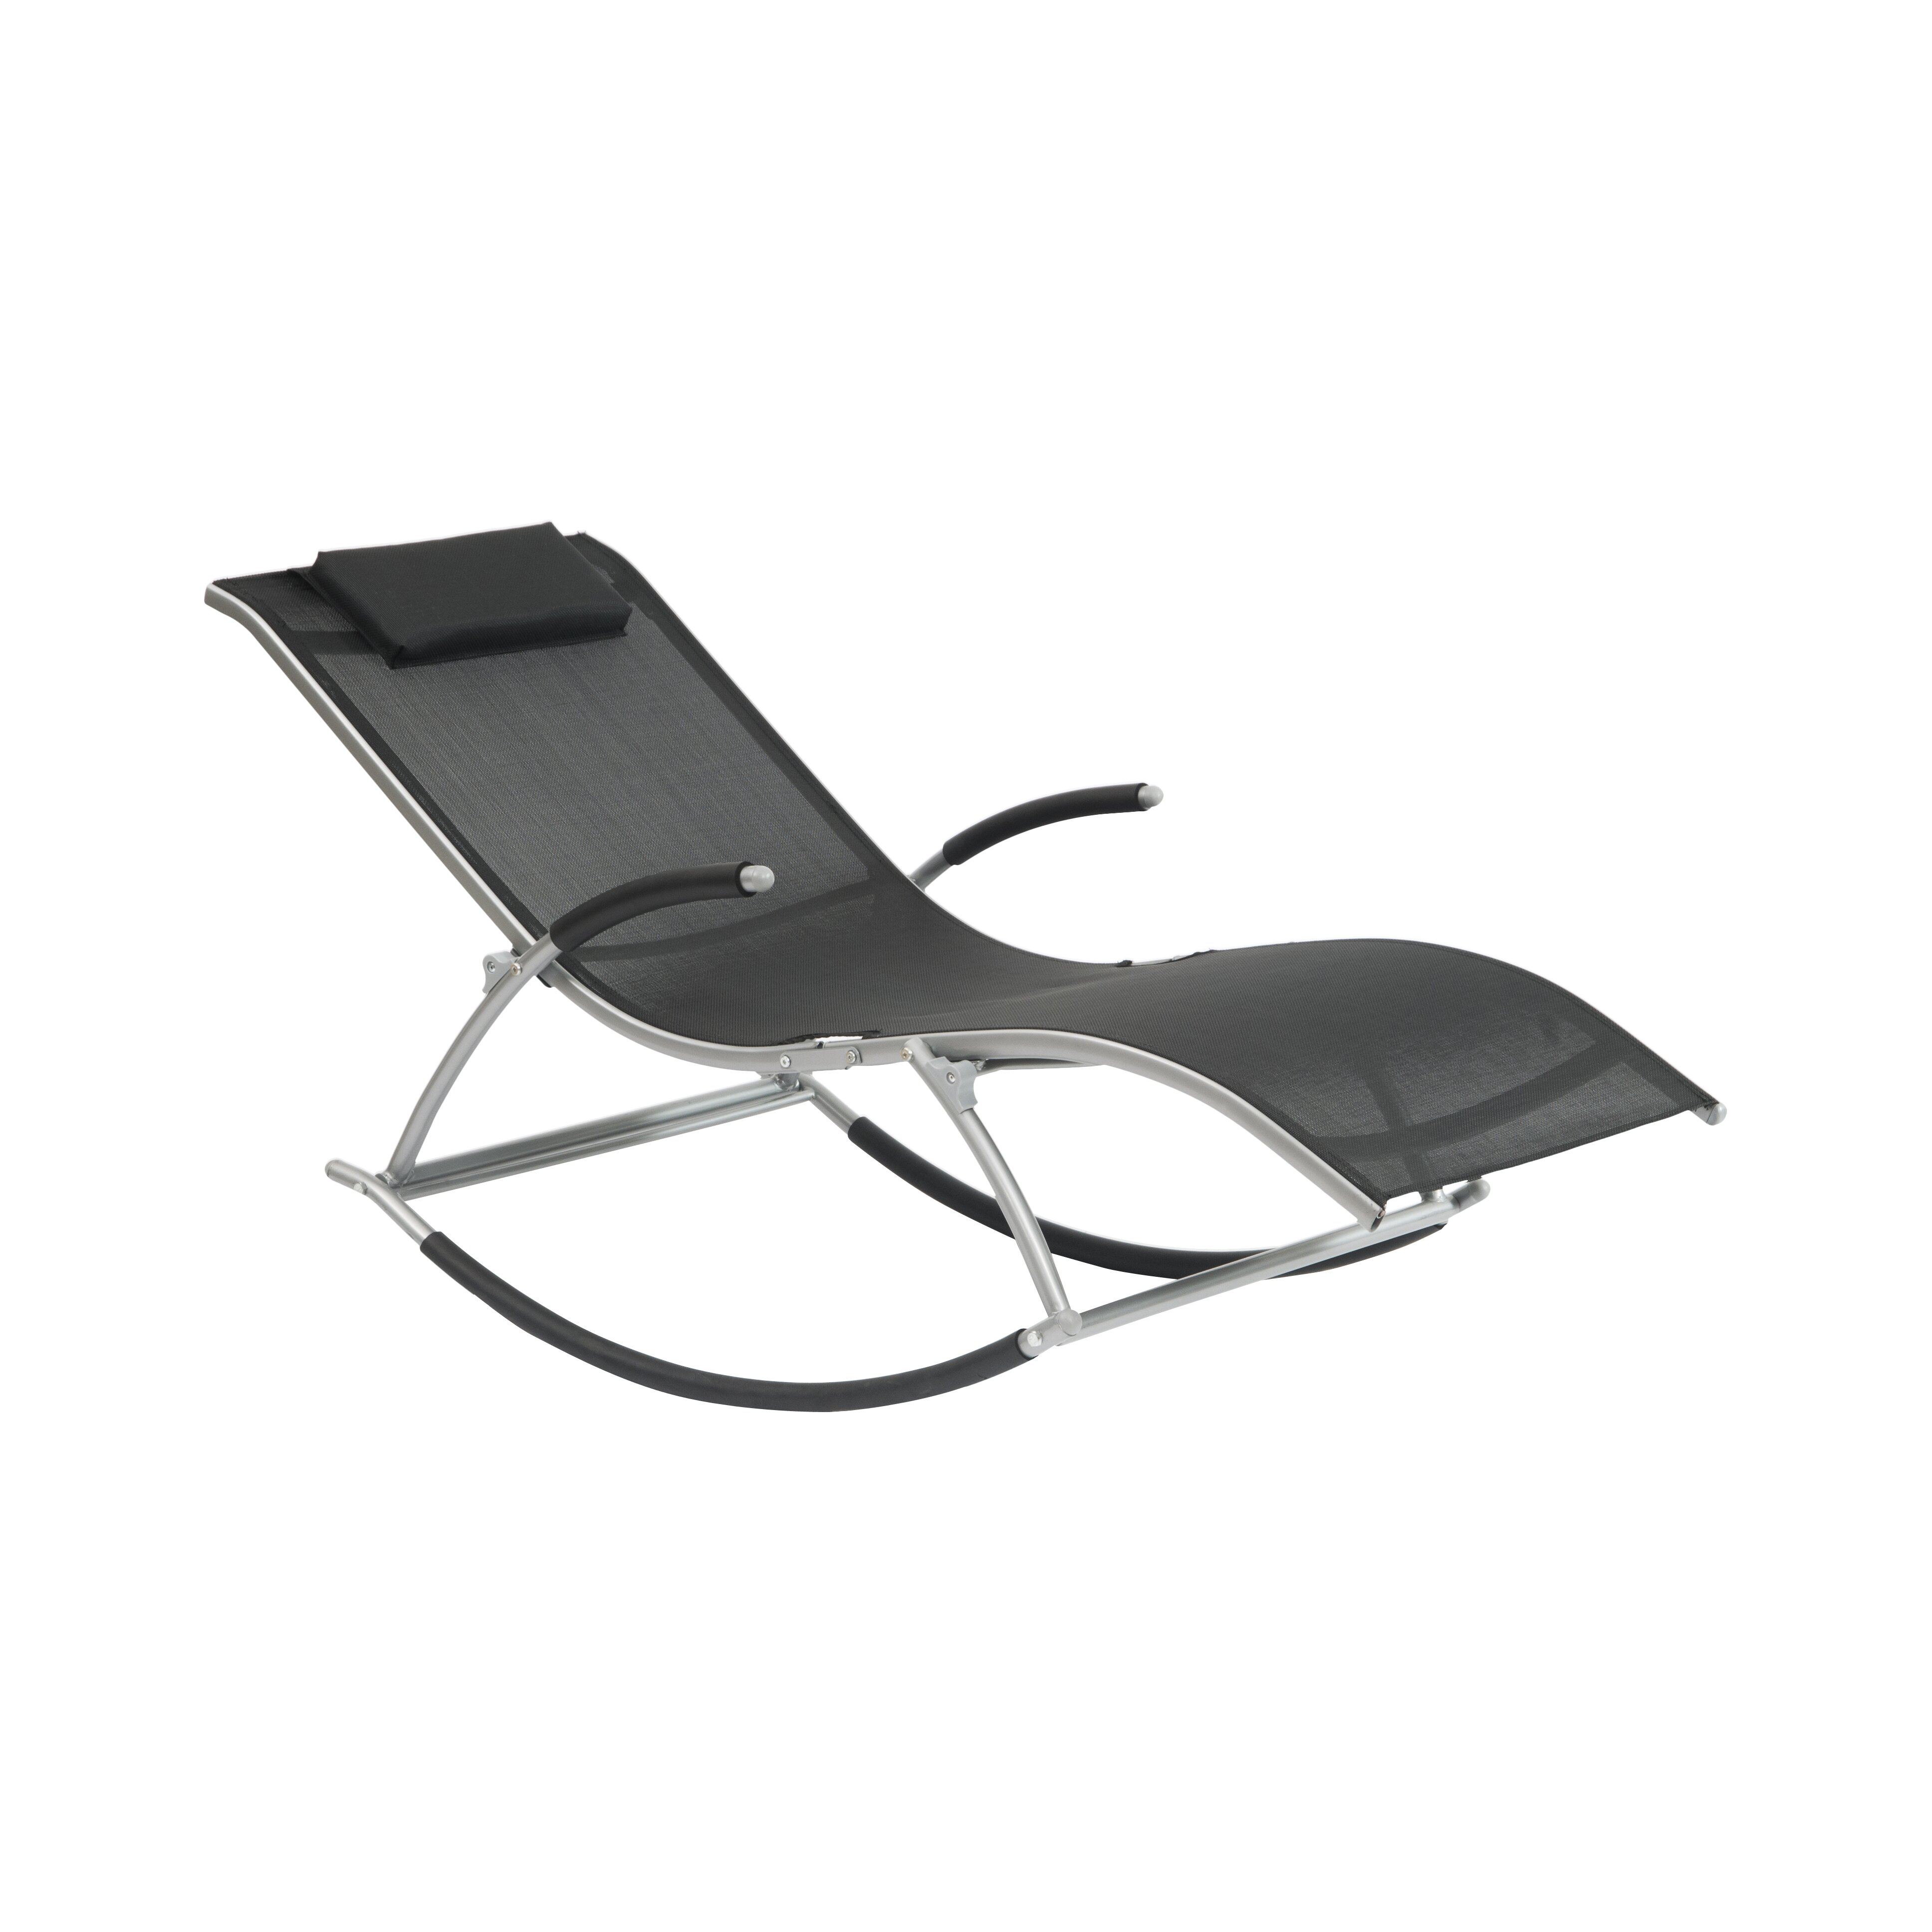 Suntime outdoor living monte carlo chaise lounge reviews for 2 chaise lounges